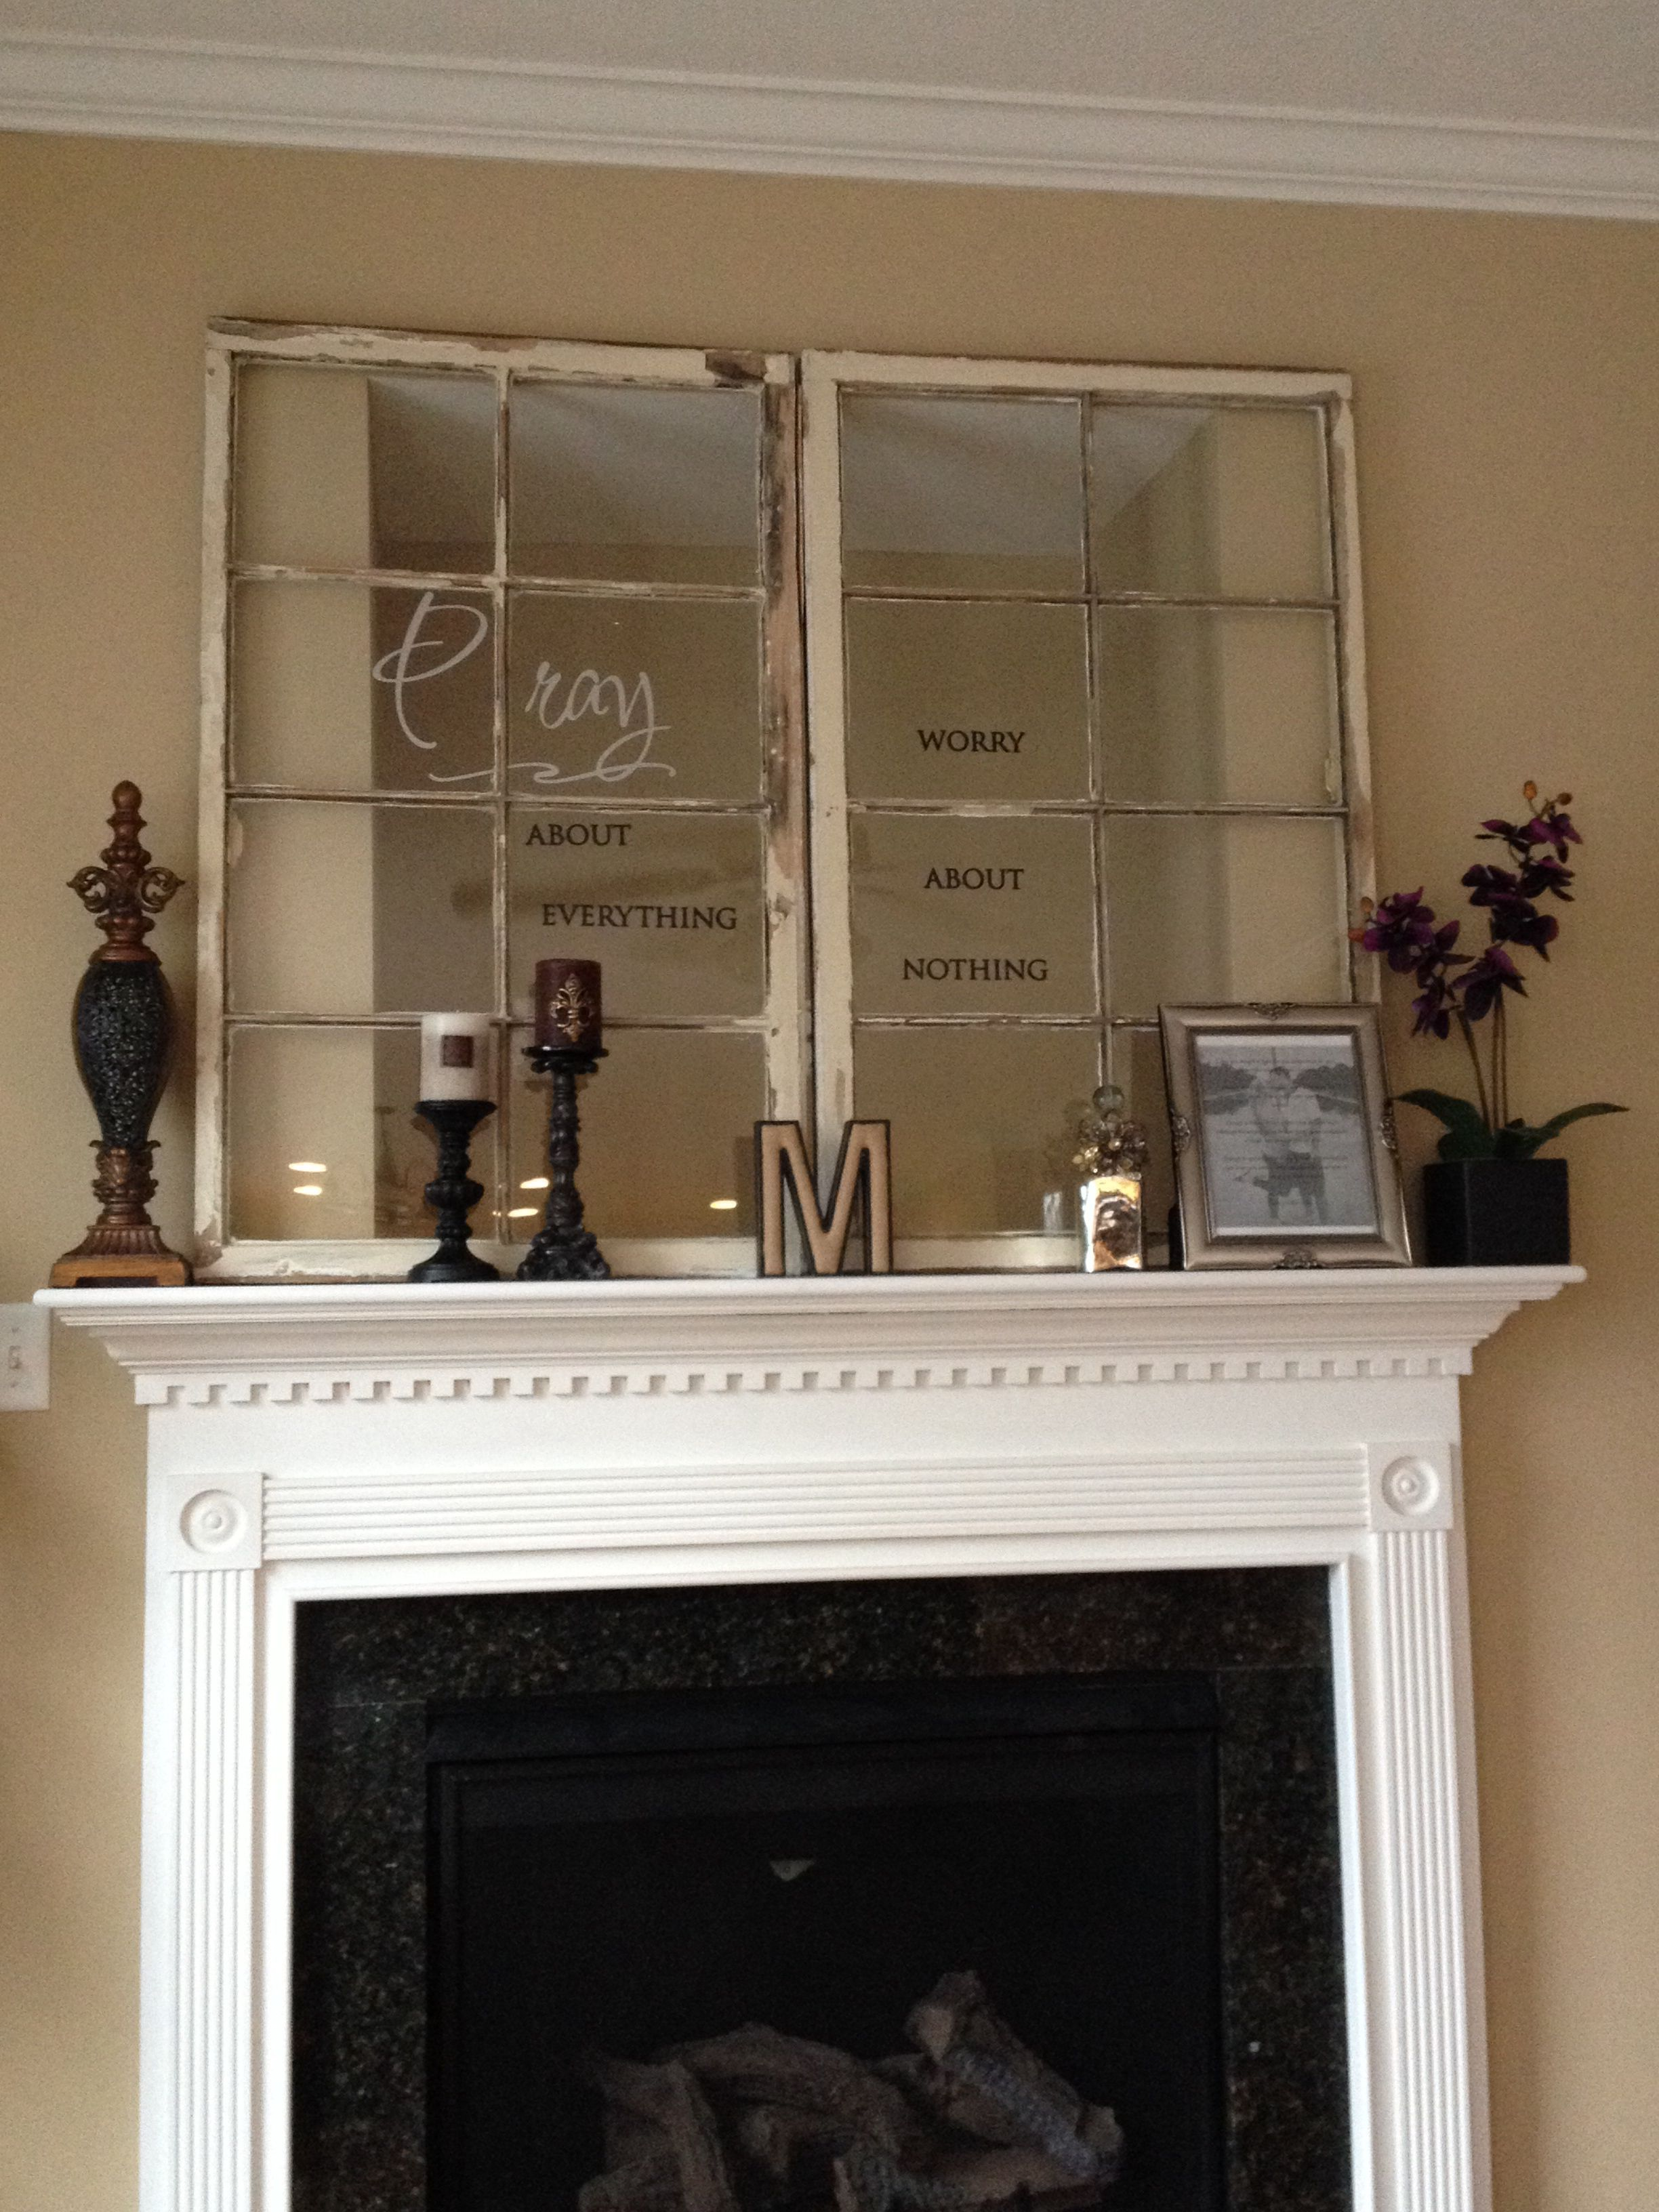 Re Purposed Window Frames To Cover The Awkward Tv Hole Above The Fireplace With Wall Writing On